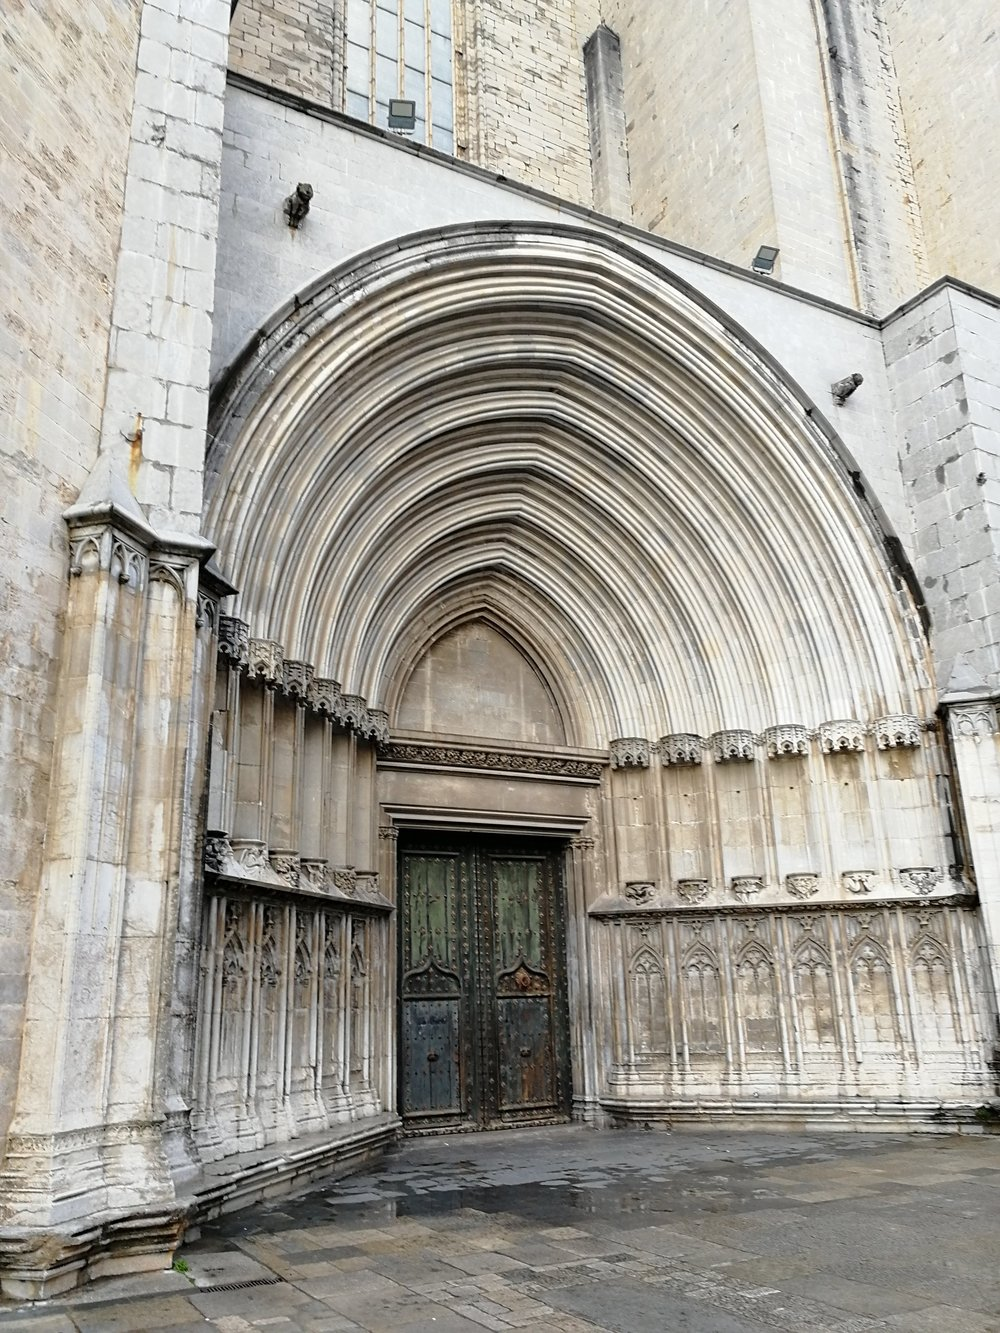 T'other side of the Cathedral